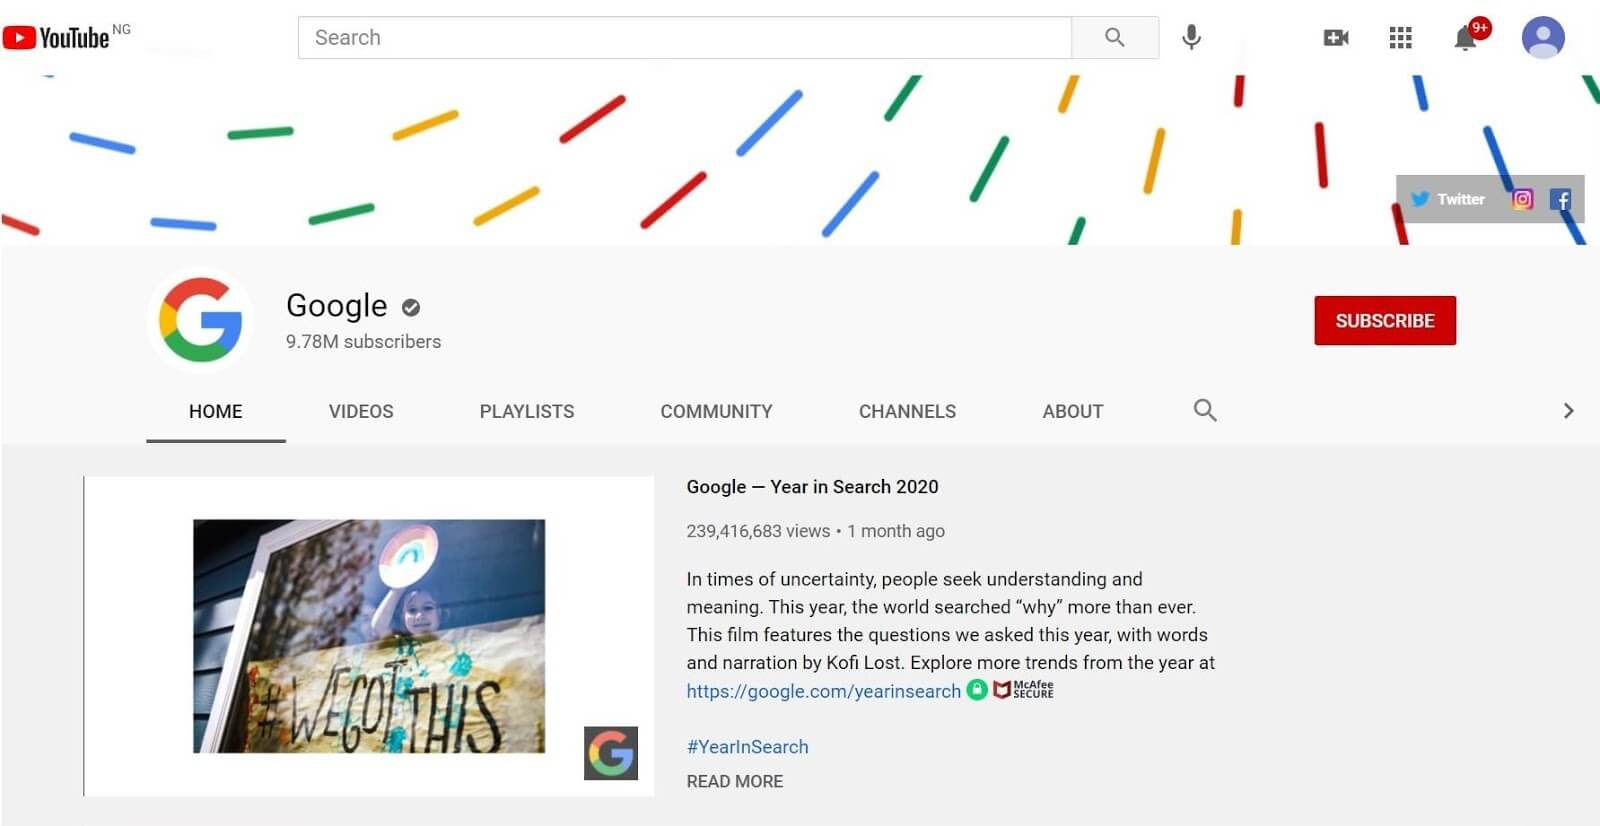 Google's YouTube channel